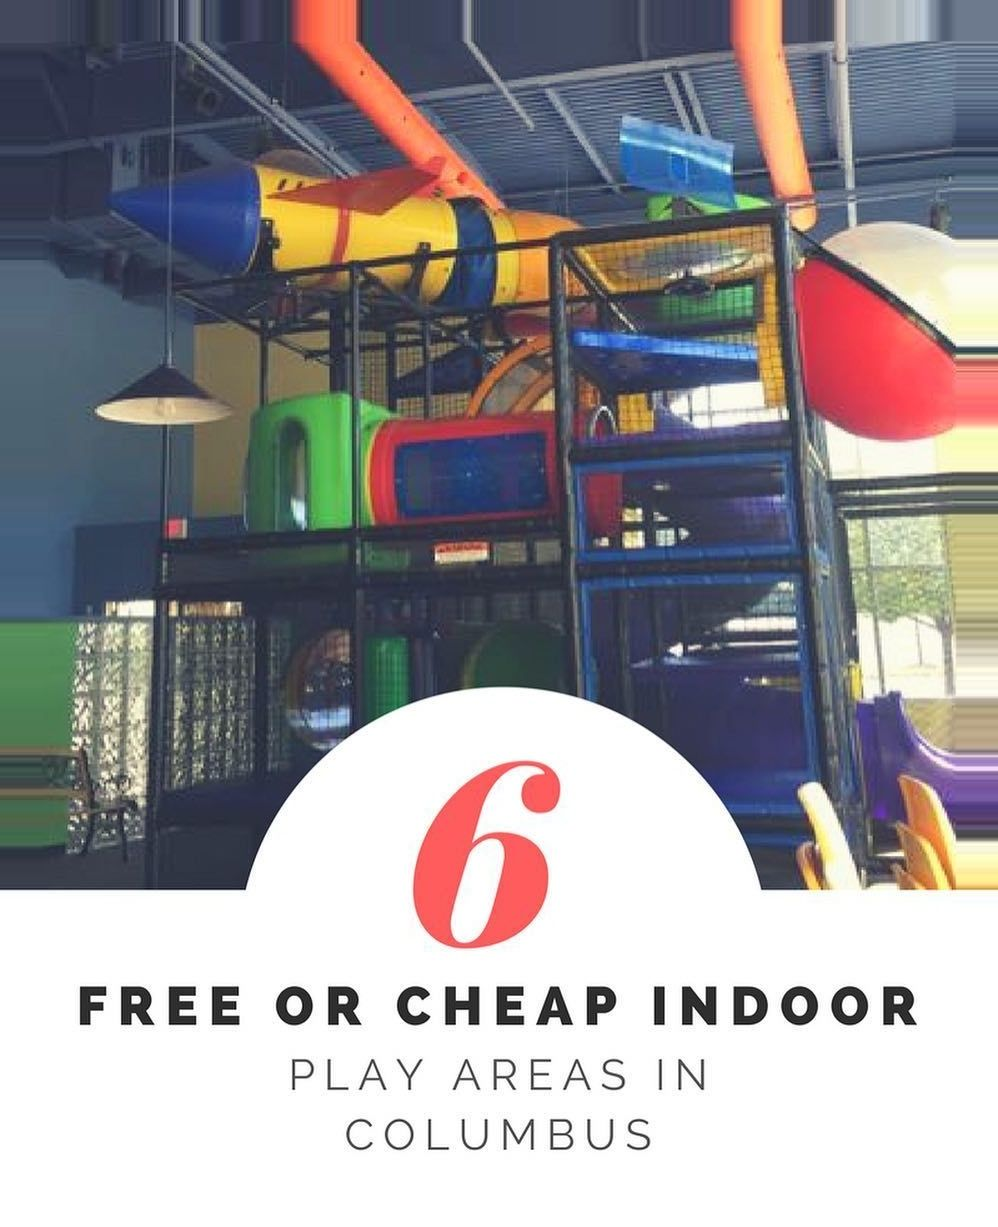 #cheap #columbus #FREE #indoor #Kids #places